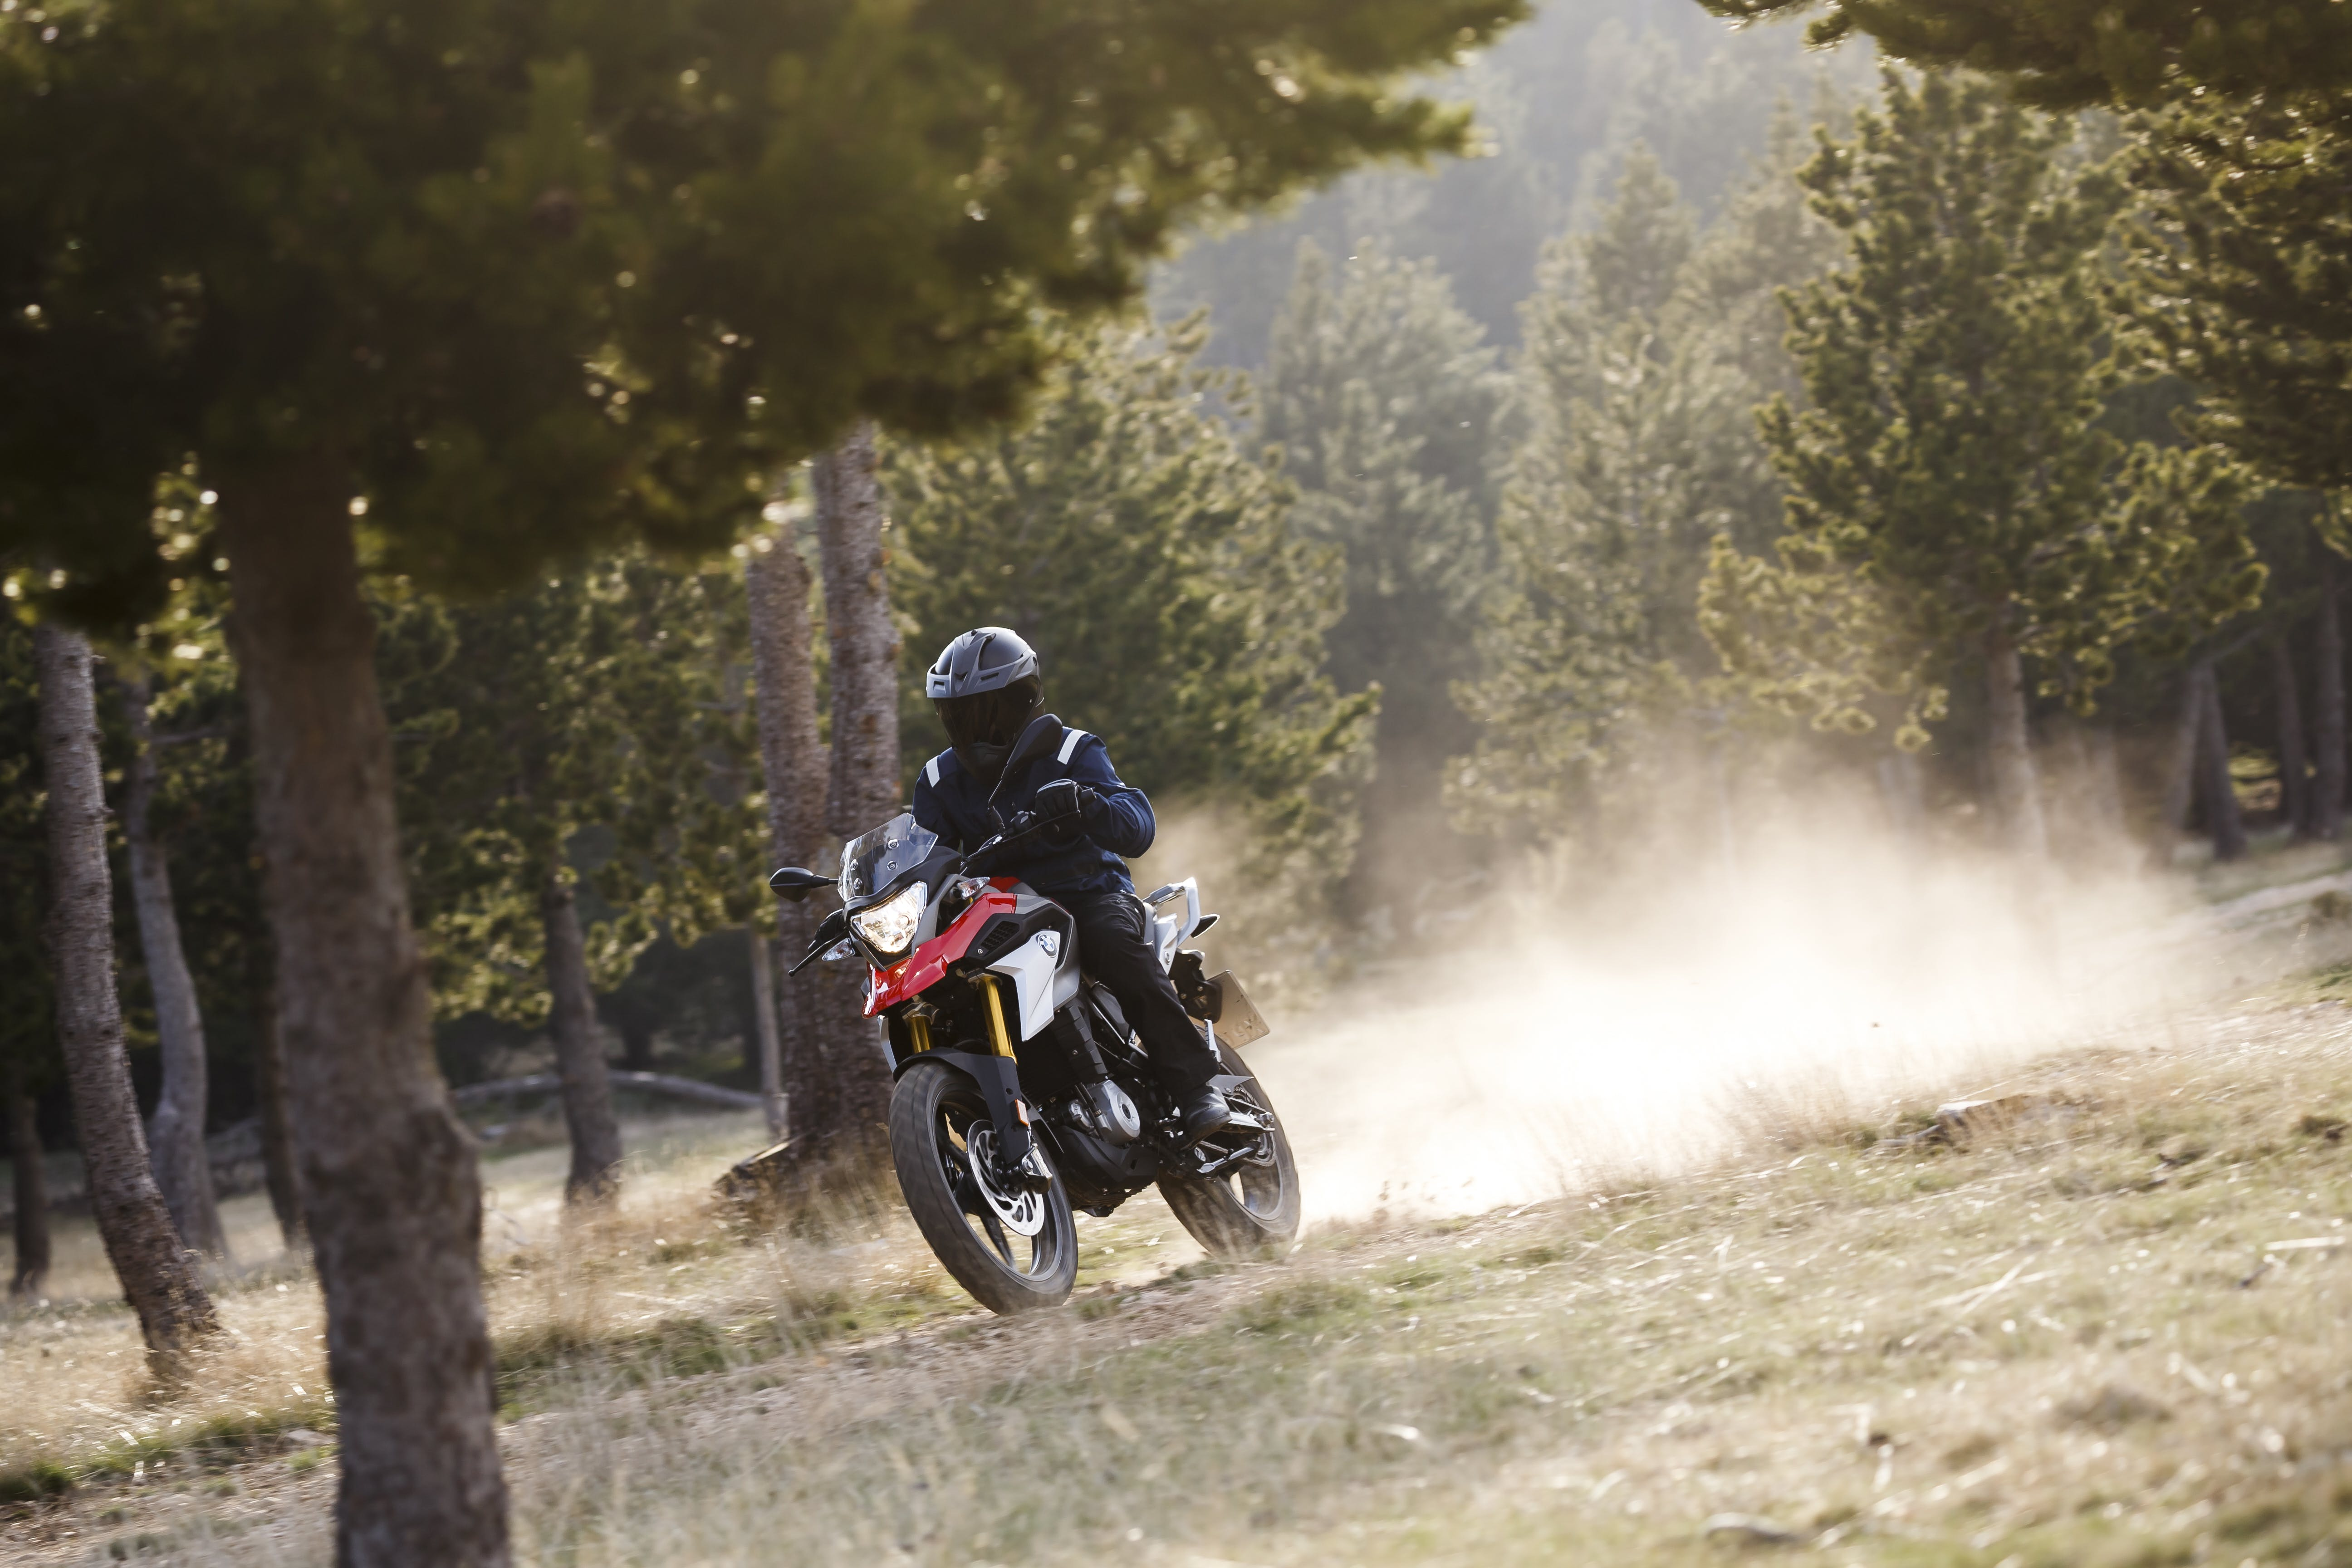 BMW G 310 GS being ridden on a off road